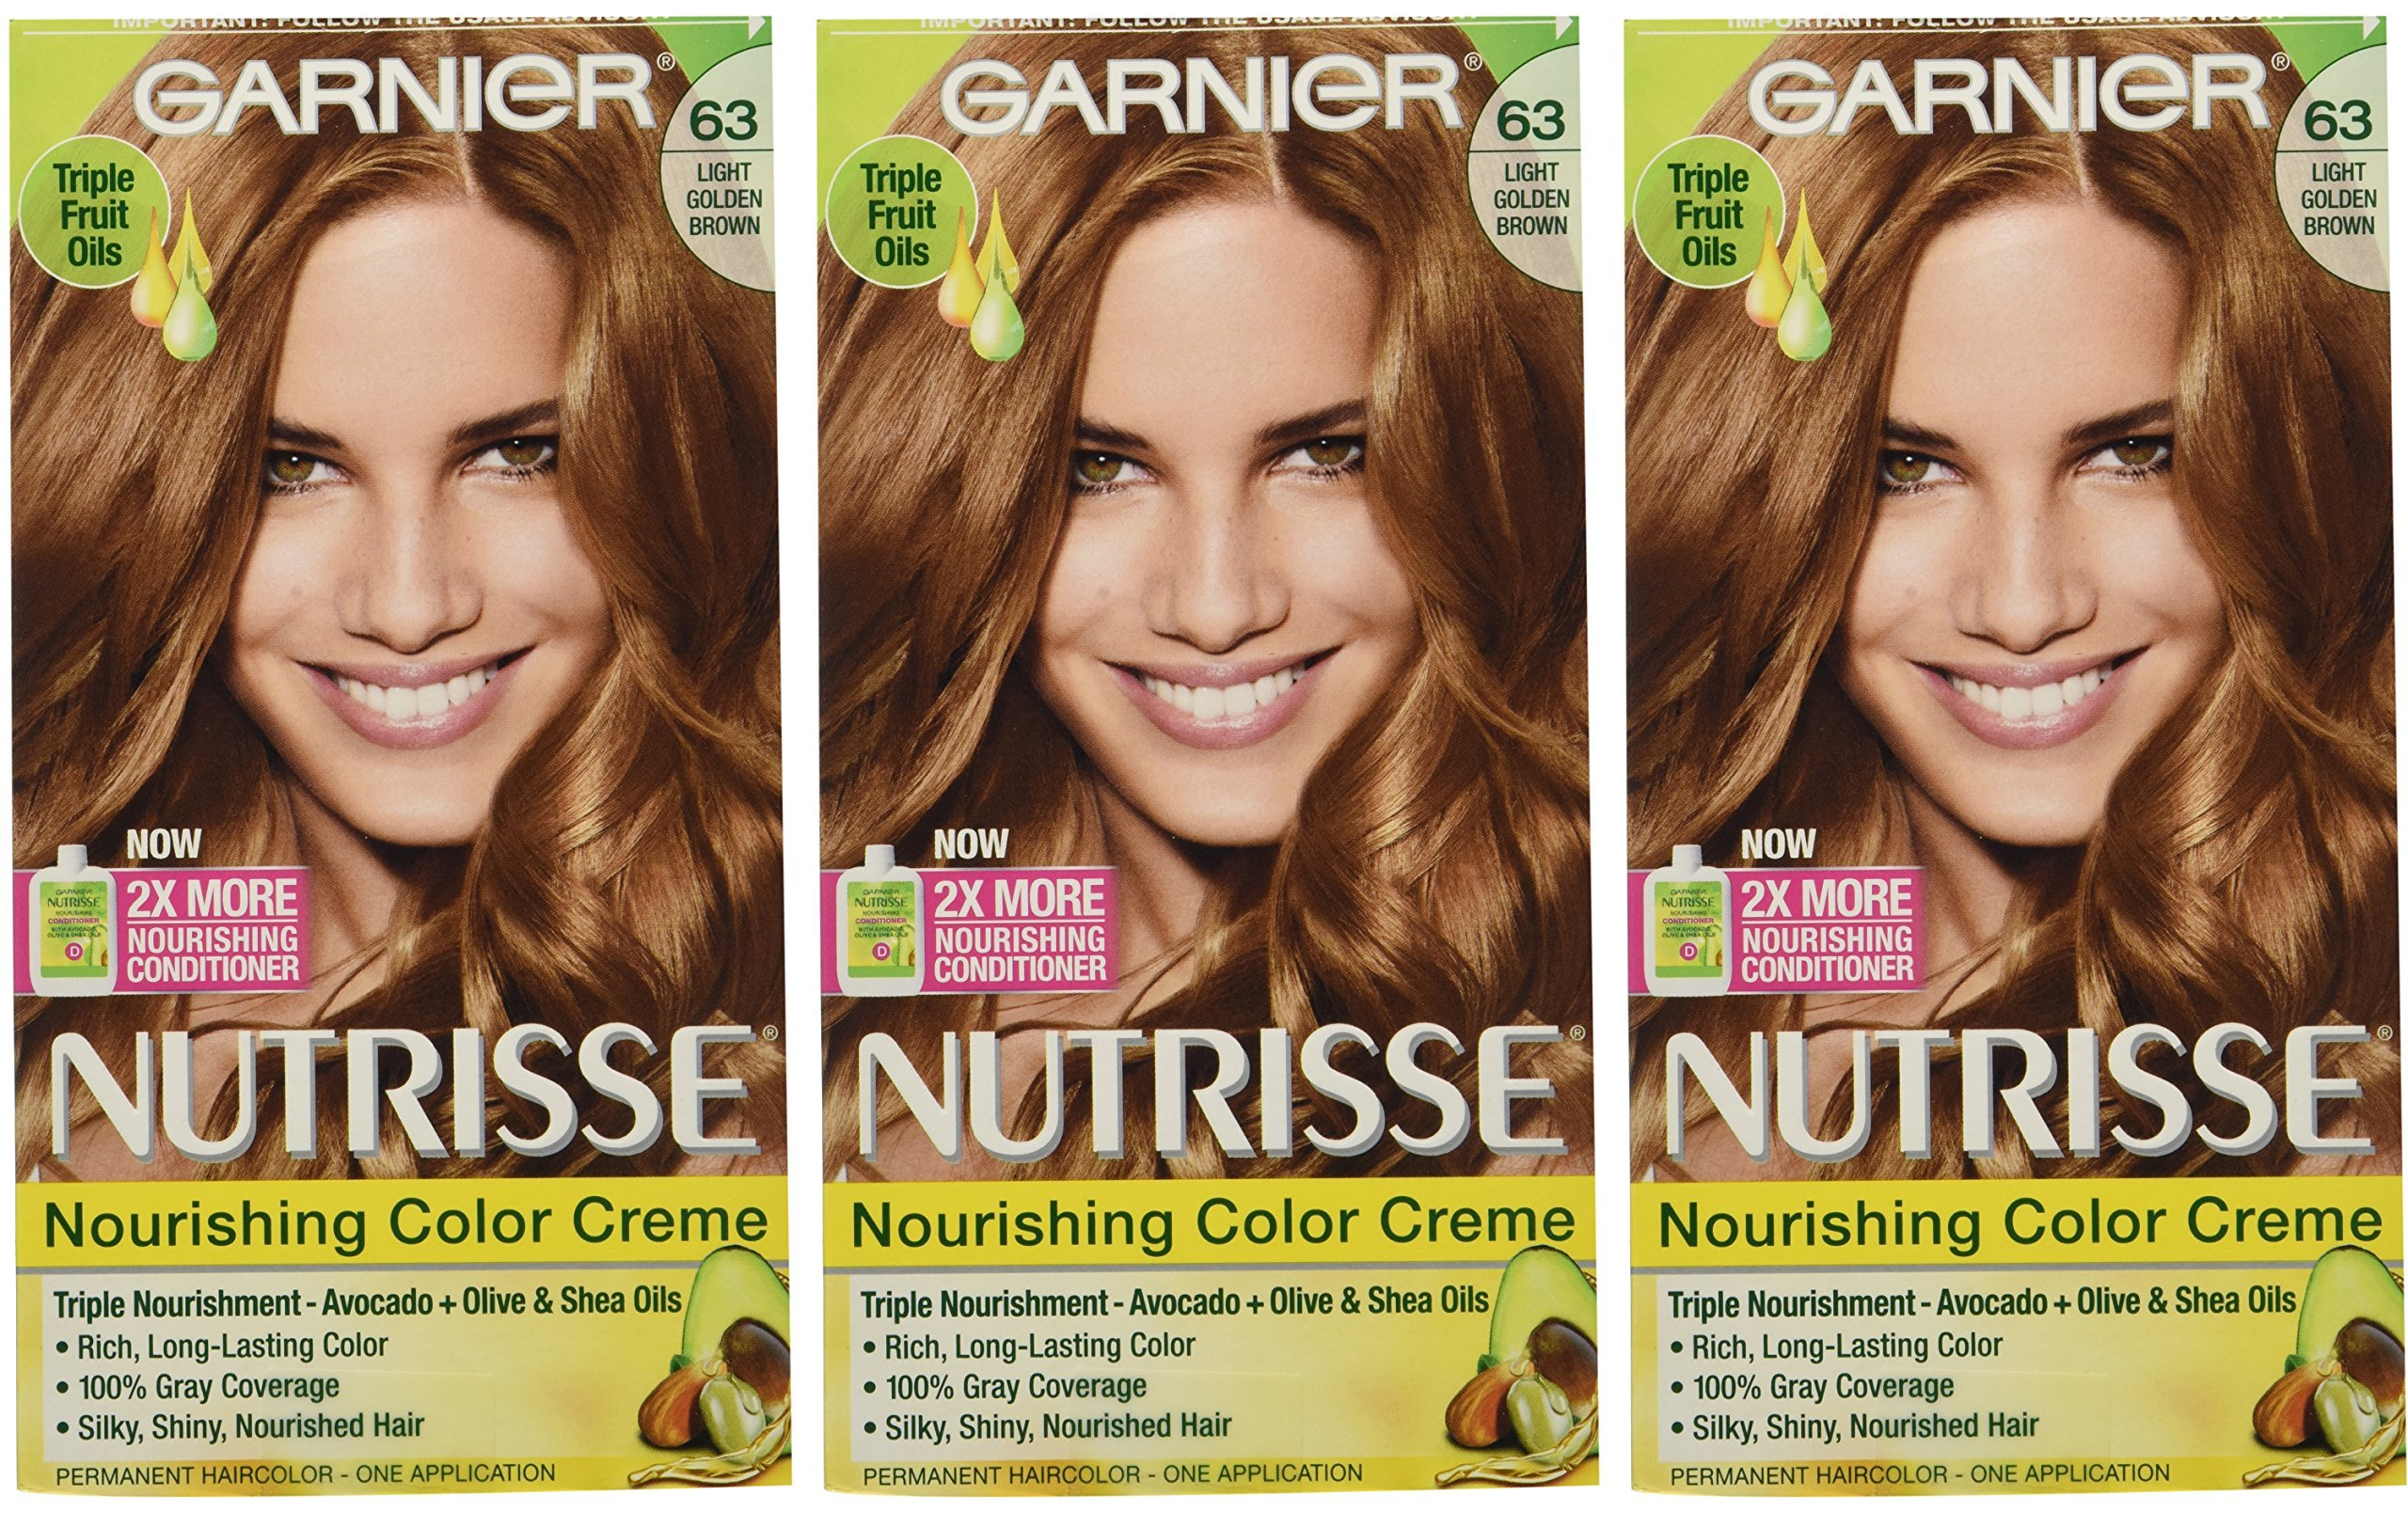 Garnier Nutrisse Nourishing Hair Color Creme, 63 Light Golden Brown (Brown Sugar), 3 Count  (Packaging May Vary)